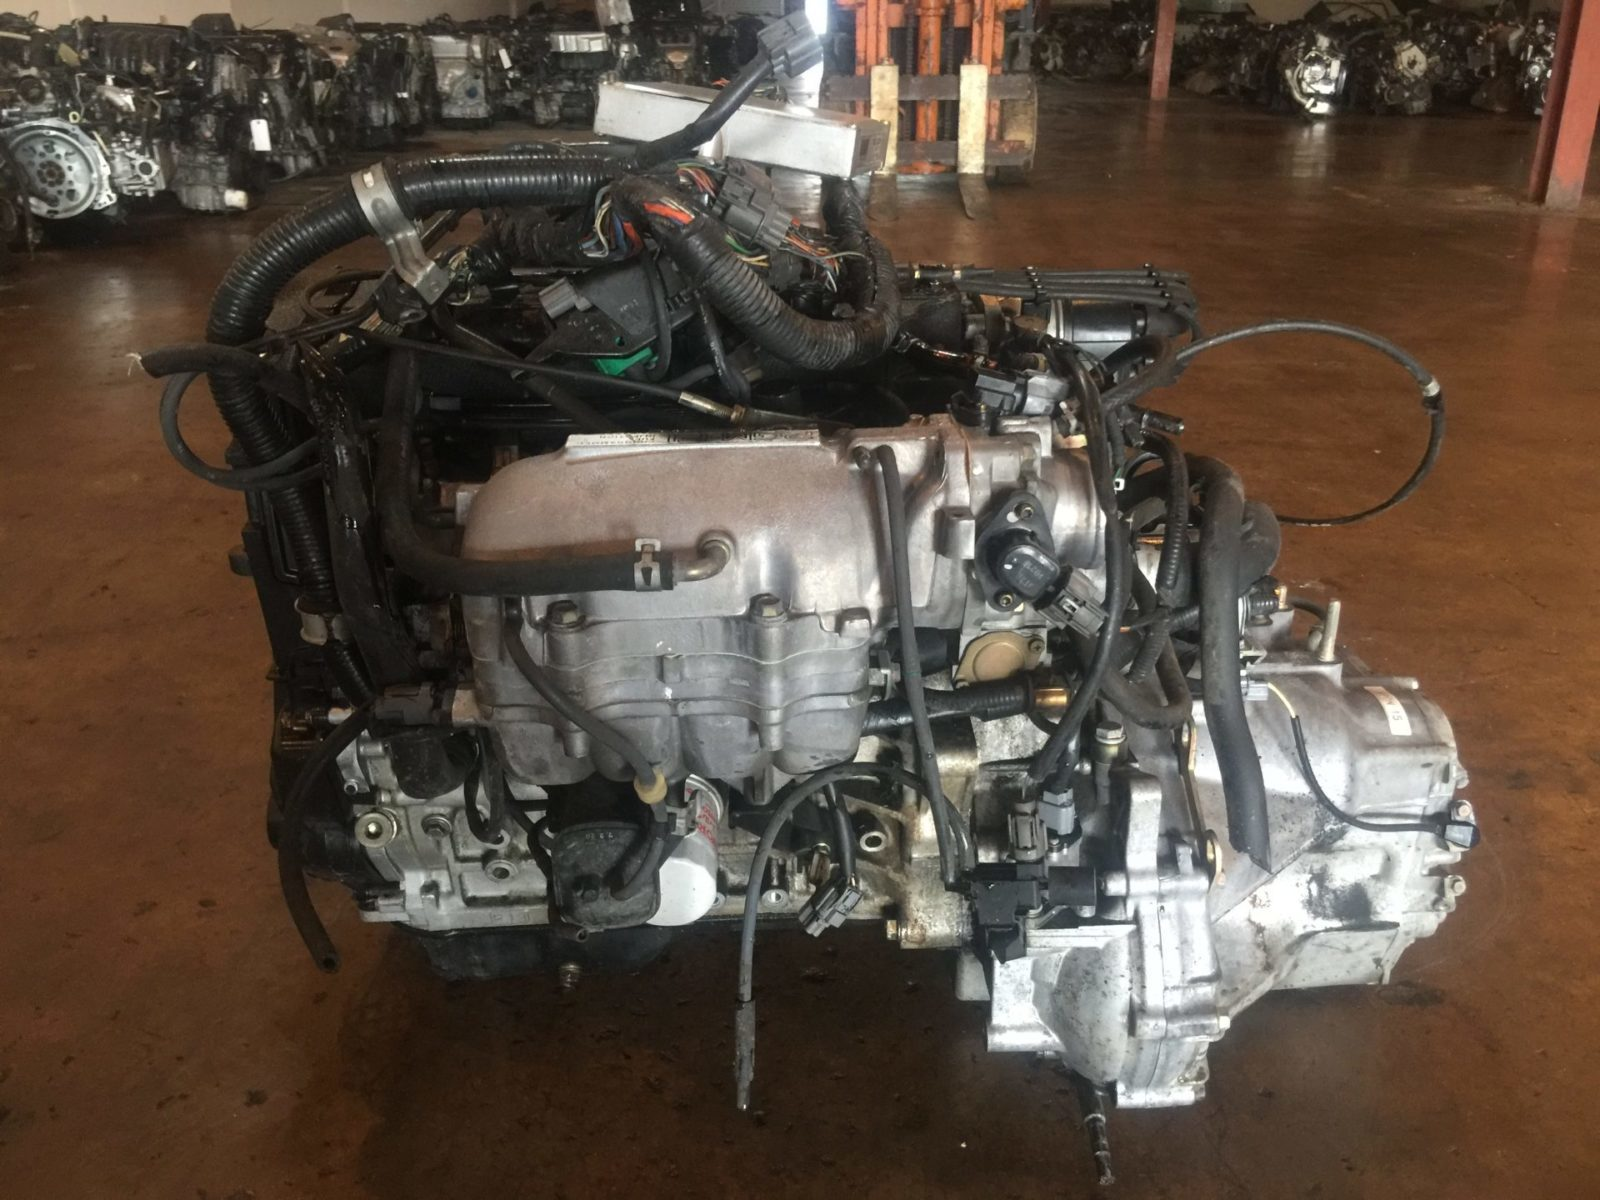 JDM H22A OBD 1 DOHC VTEC Engine & Automatic Transmission Wire Ecu 92-95 H A Engine Wiring Harness on dodge sprinter engine harness, suspension harness, oem engine wire harness, hoist harness, engine harmonic balancer, engine control module, bmw 2 8 engine wire harness,